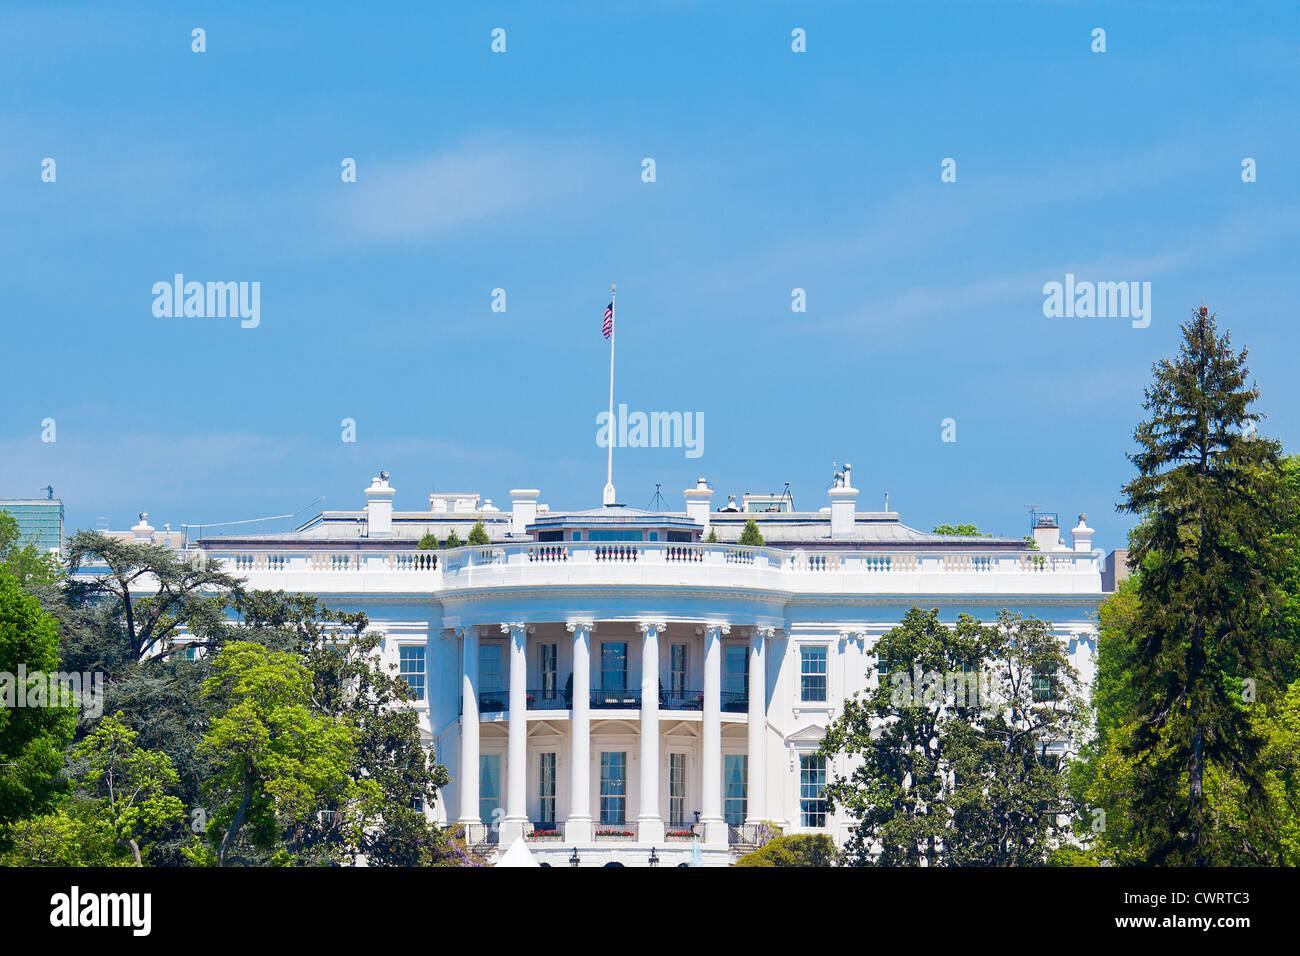 The White House at Washington DC, the residence of the President of the United States. - Stock Image